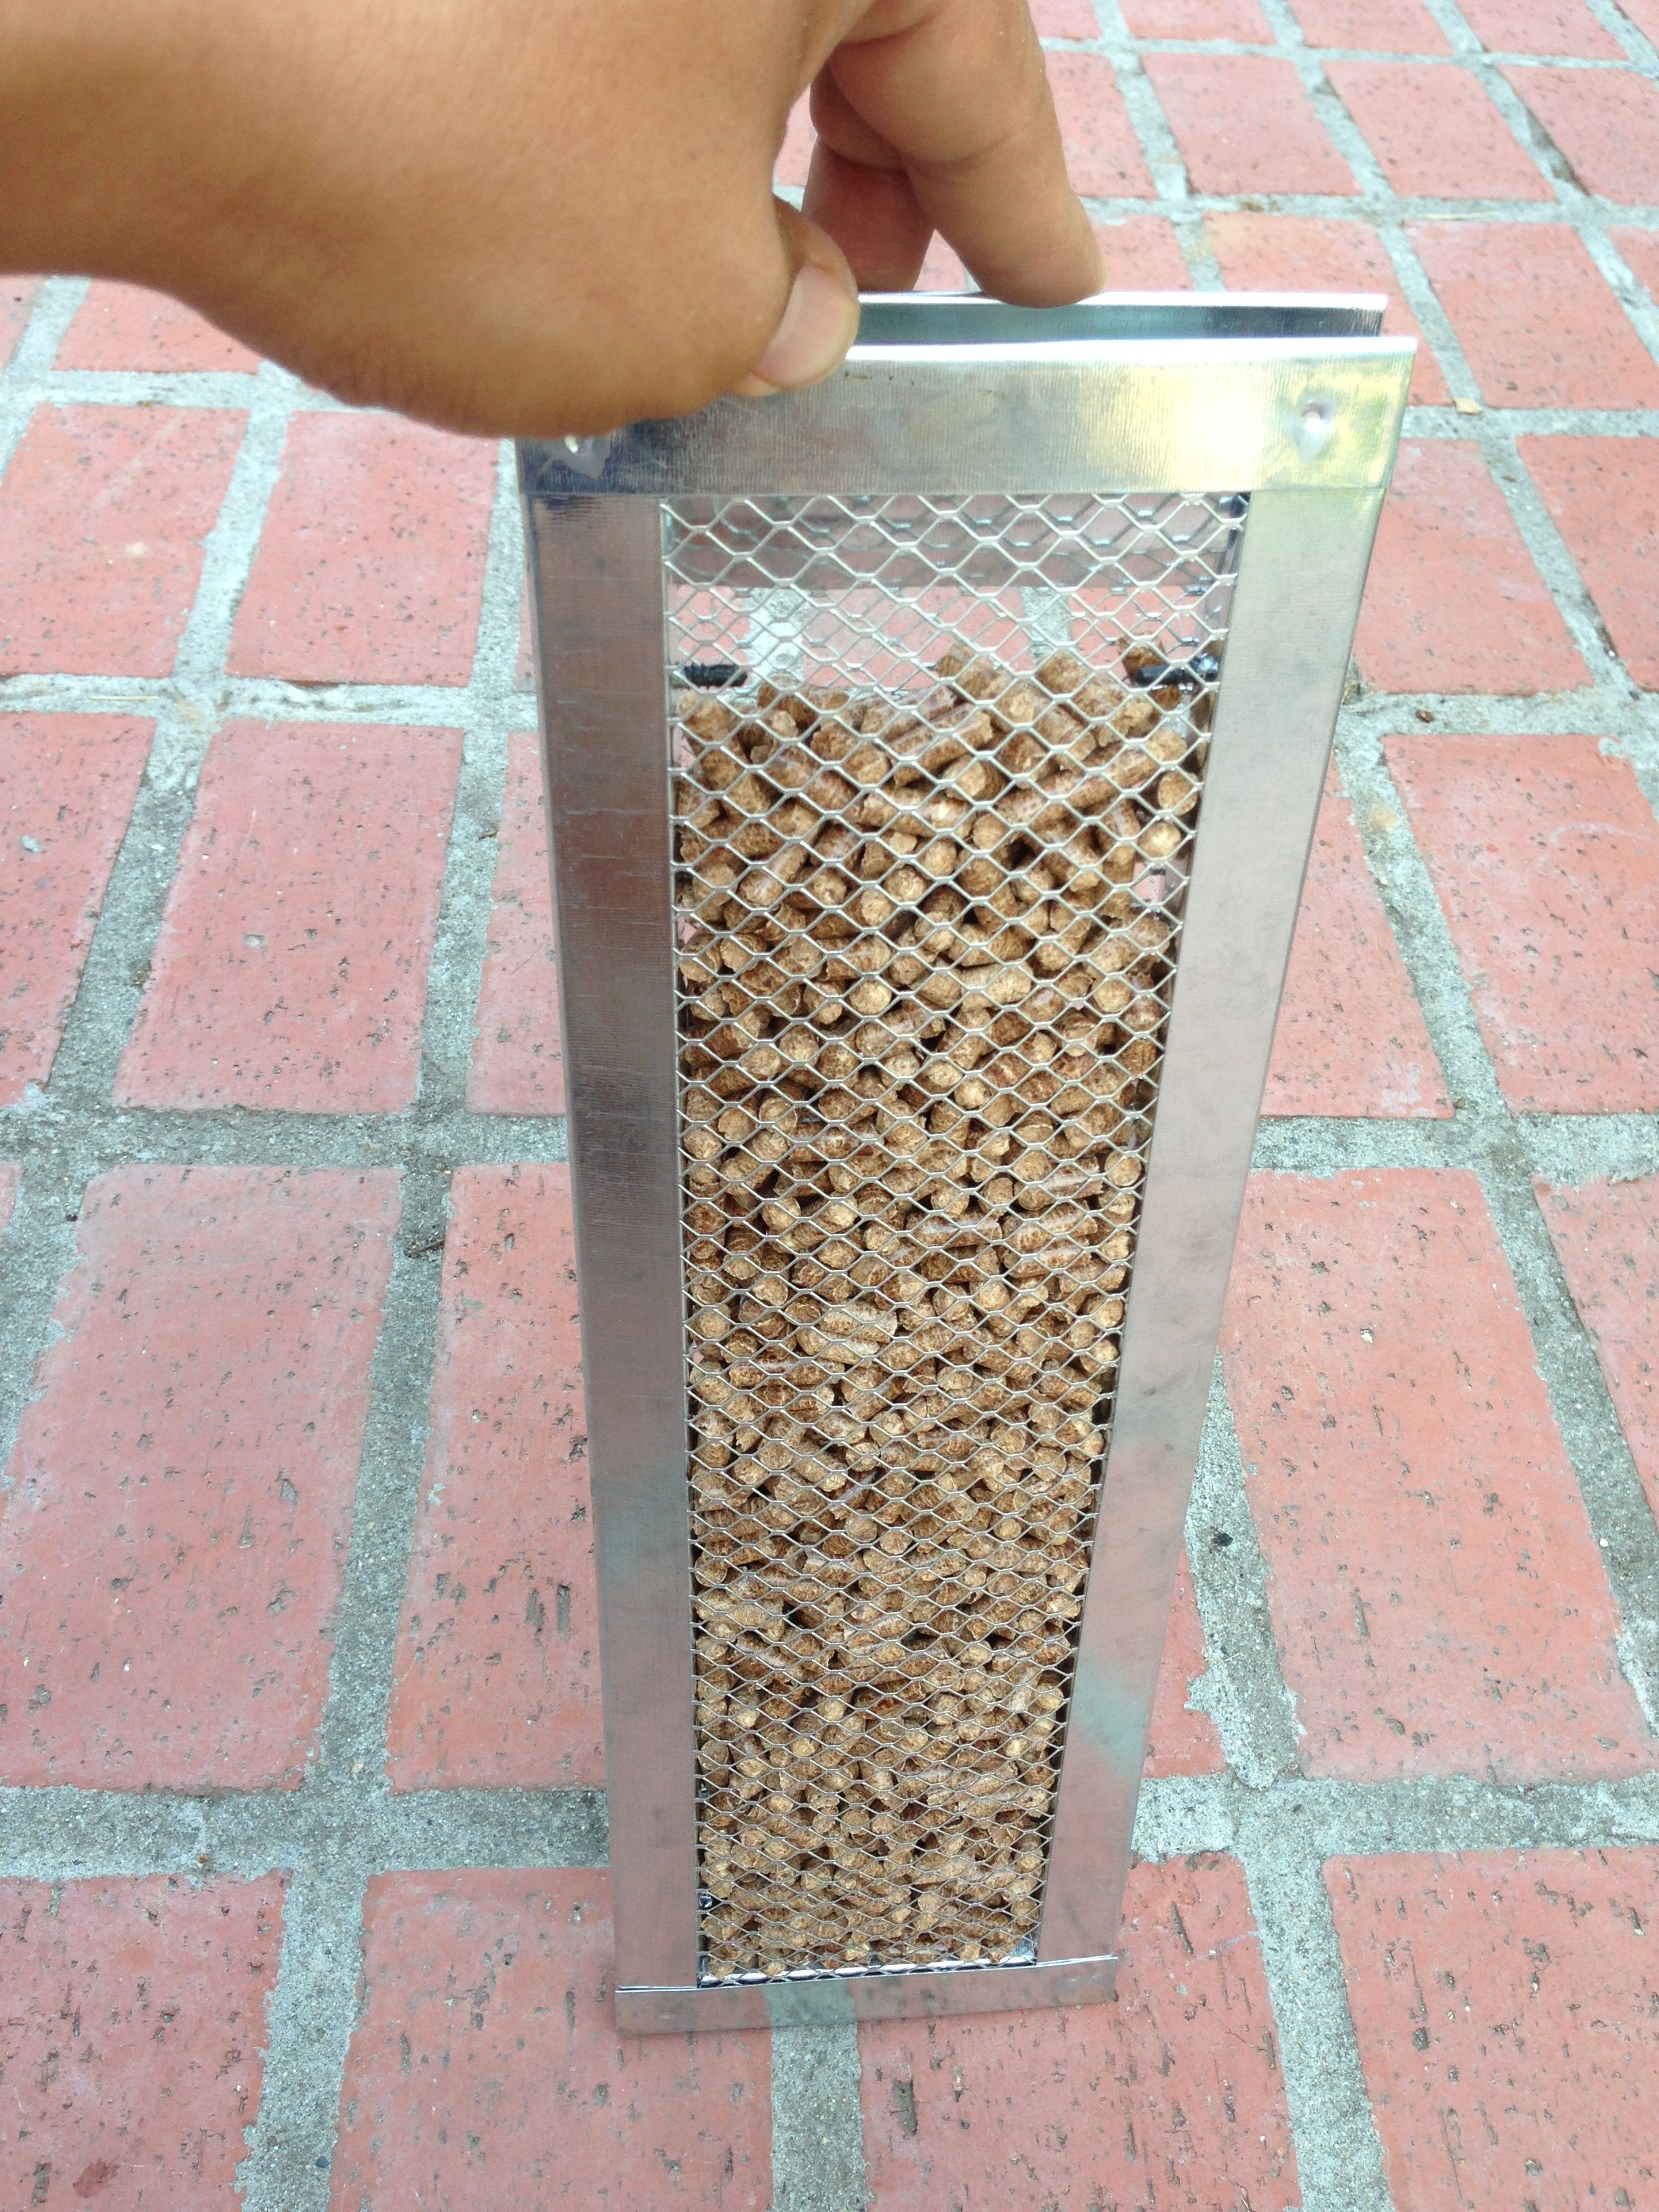 A diy smoke generator built using 2 14x6 foundation vents found at